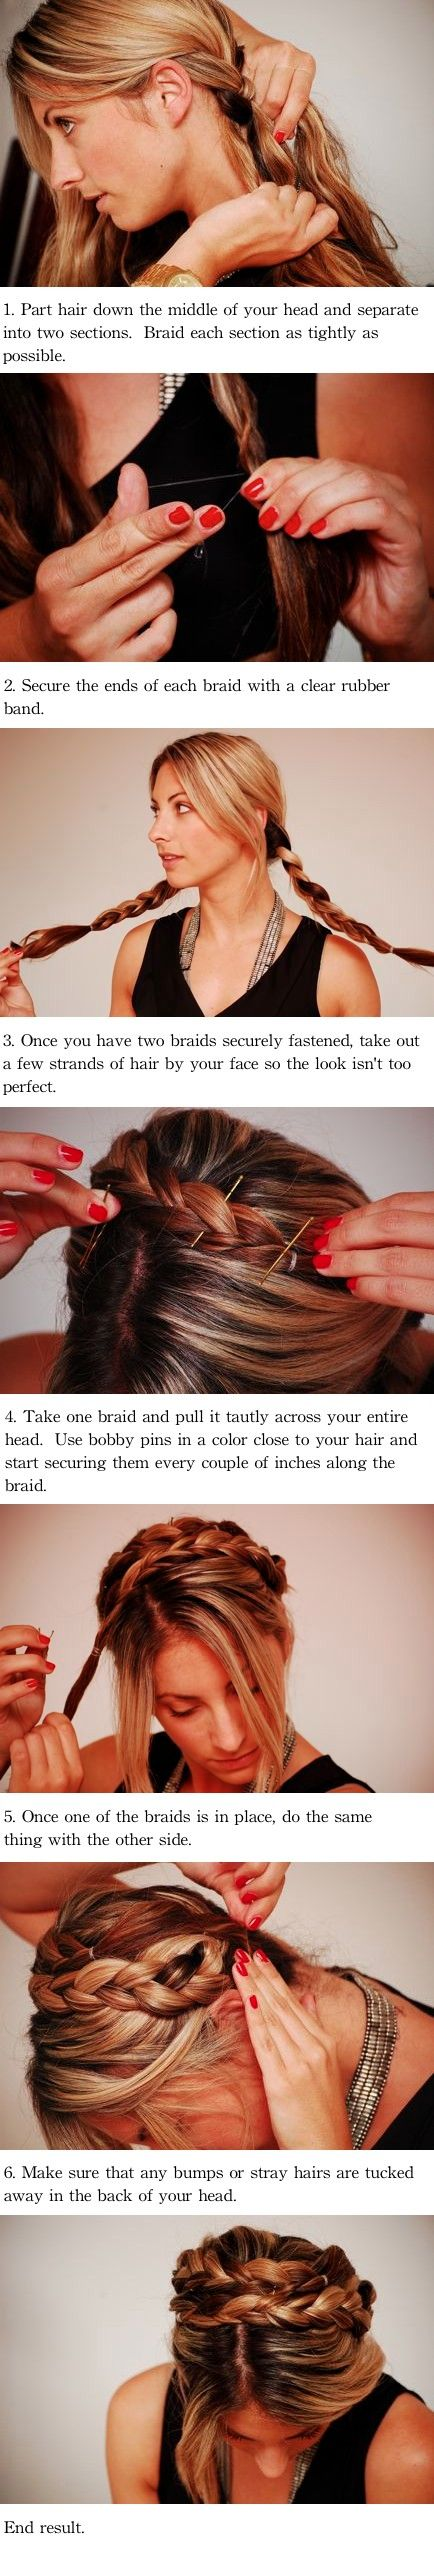 Milkmaid Braid, Up Dos, Braids Updo, Simple Braids Tutorials, Hair Style, Cupcakes And Cashmere, Updo Tutorials, Crowns Braids, Maiden Braid